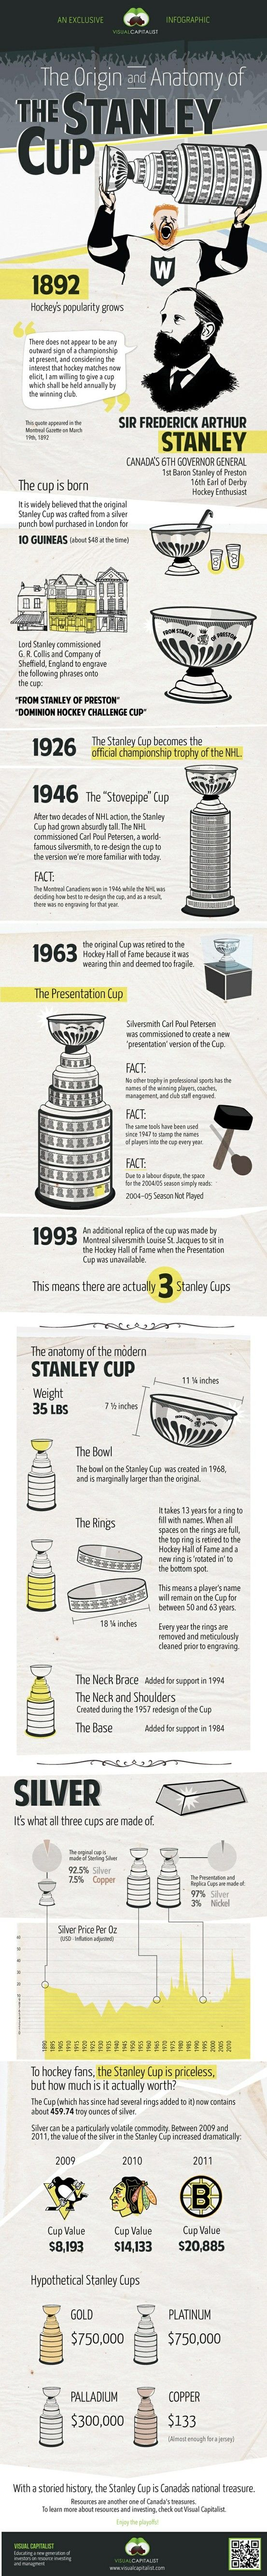 The Orgin and Anatomy of the Stanley Cup #Hockey